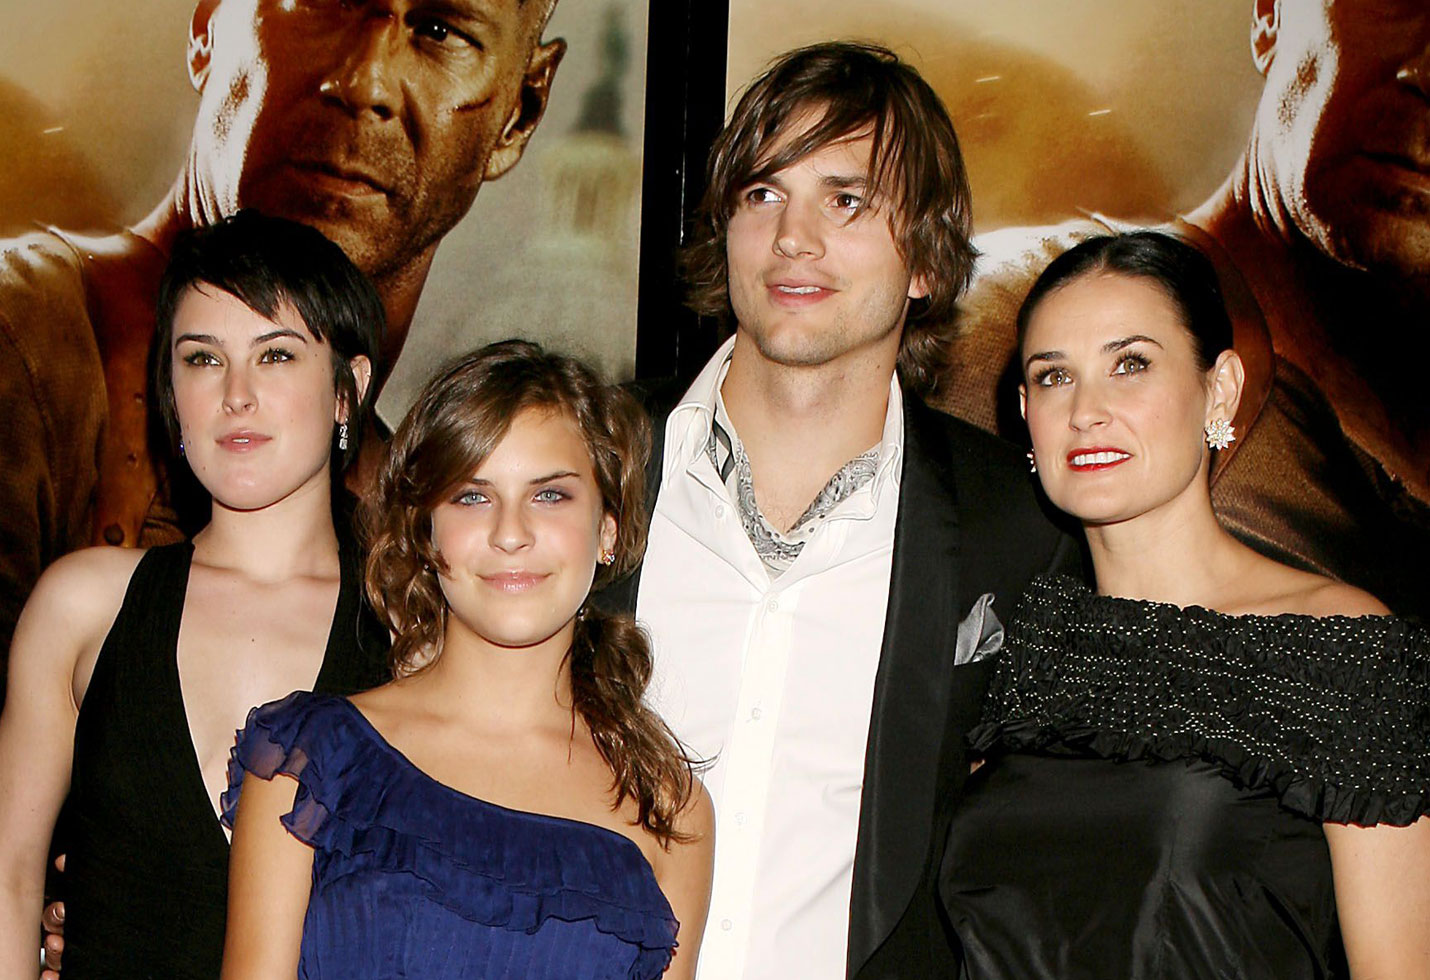 Tallulah Belle Willis, Rumer Willis, Ashton Kutcher and Demi Moore